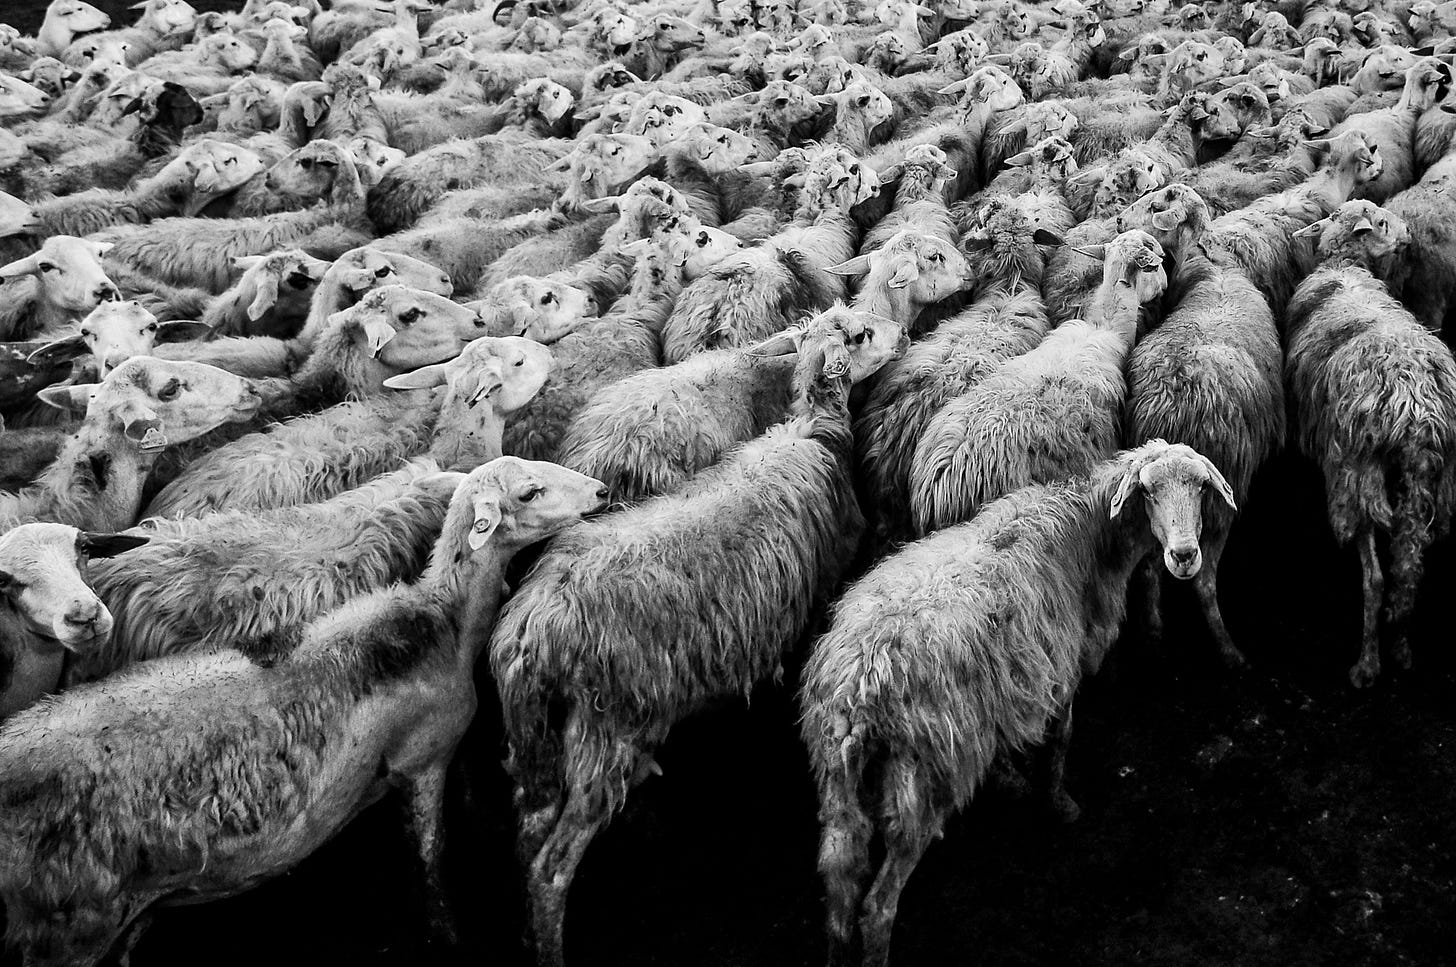 Herd of sheep for article by Larry G. Maguire